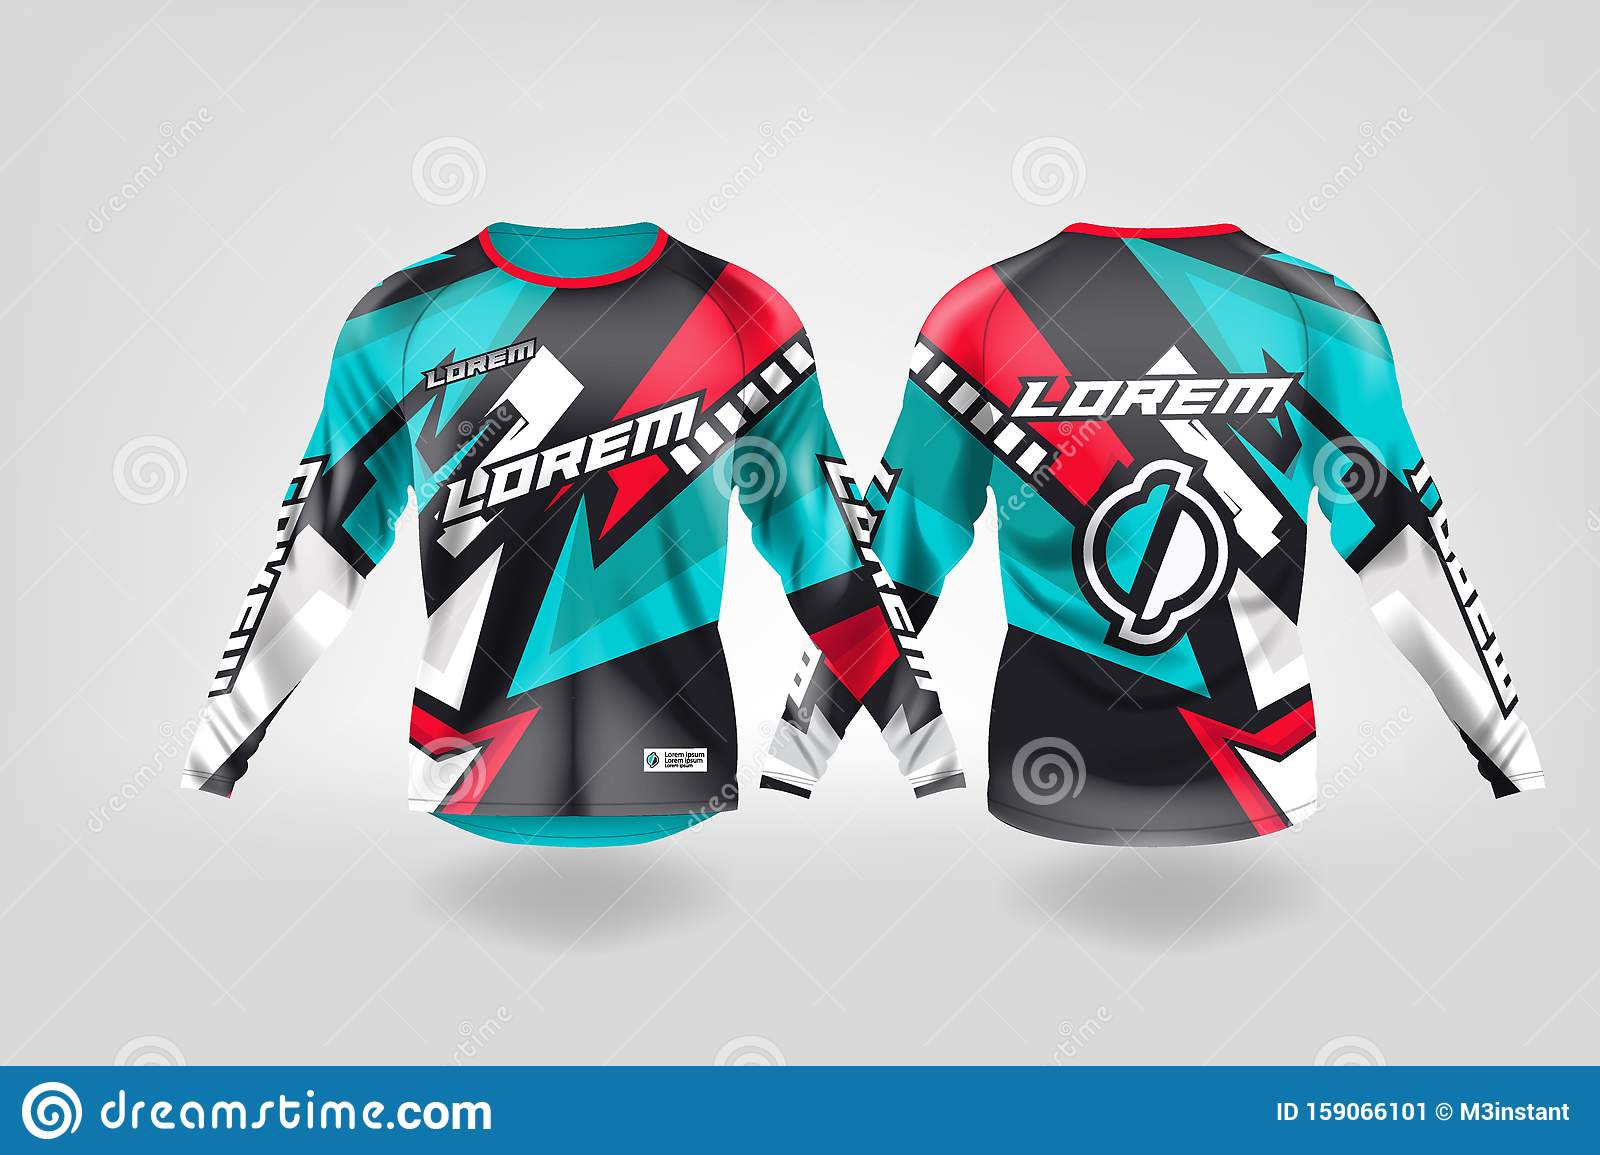 T Shirt Sport Design Template Long Sleeve Soccer Jersey Mockup For Football Club Uniform Front And Back View Motocross Jersey Mt Stock Illustration Illustration Of Football Look 159066101